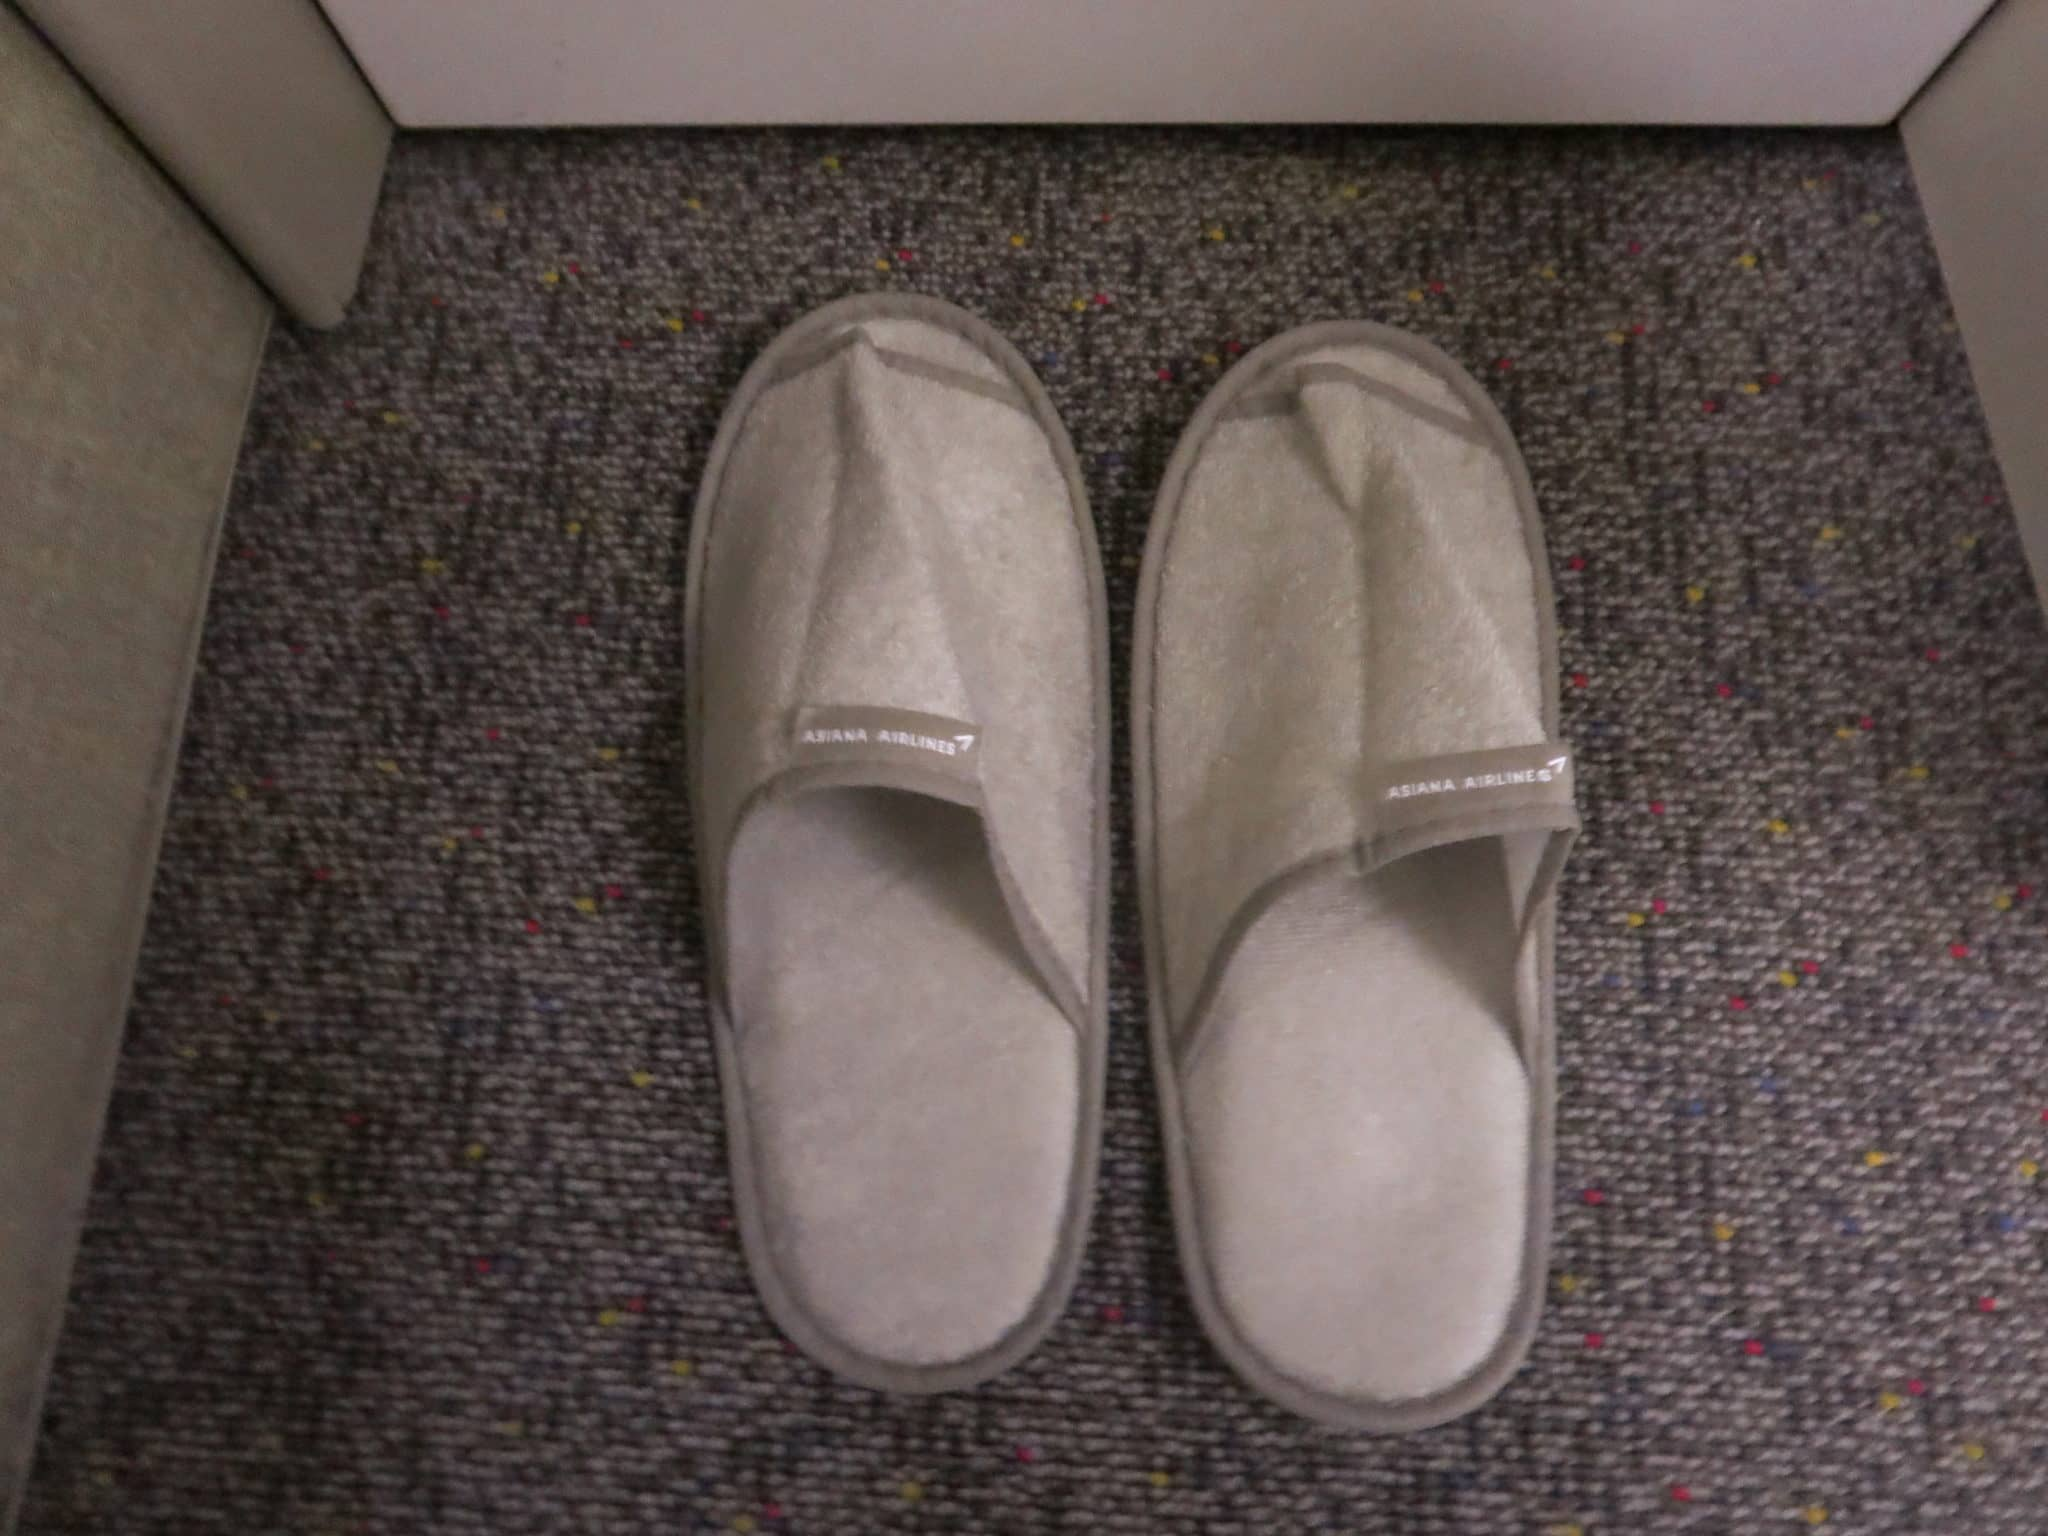 Asiana Business Class Amenity Slipper